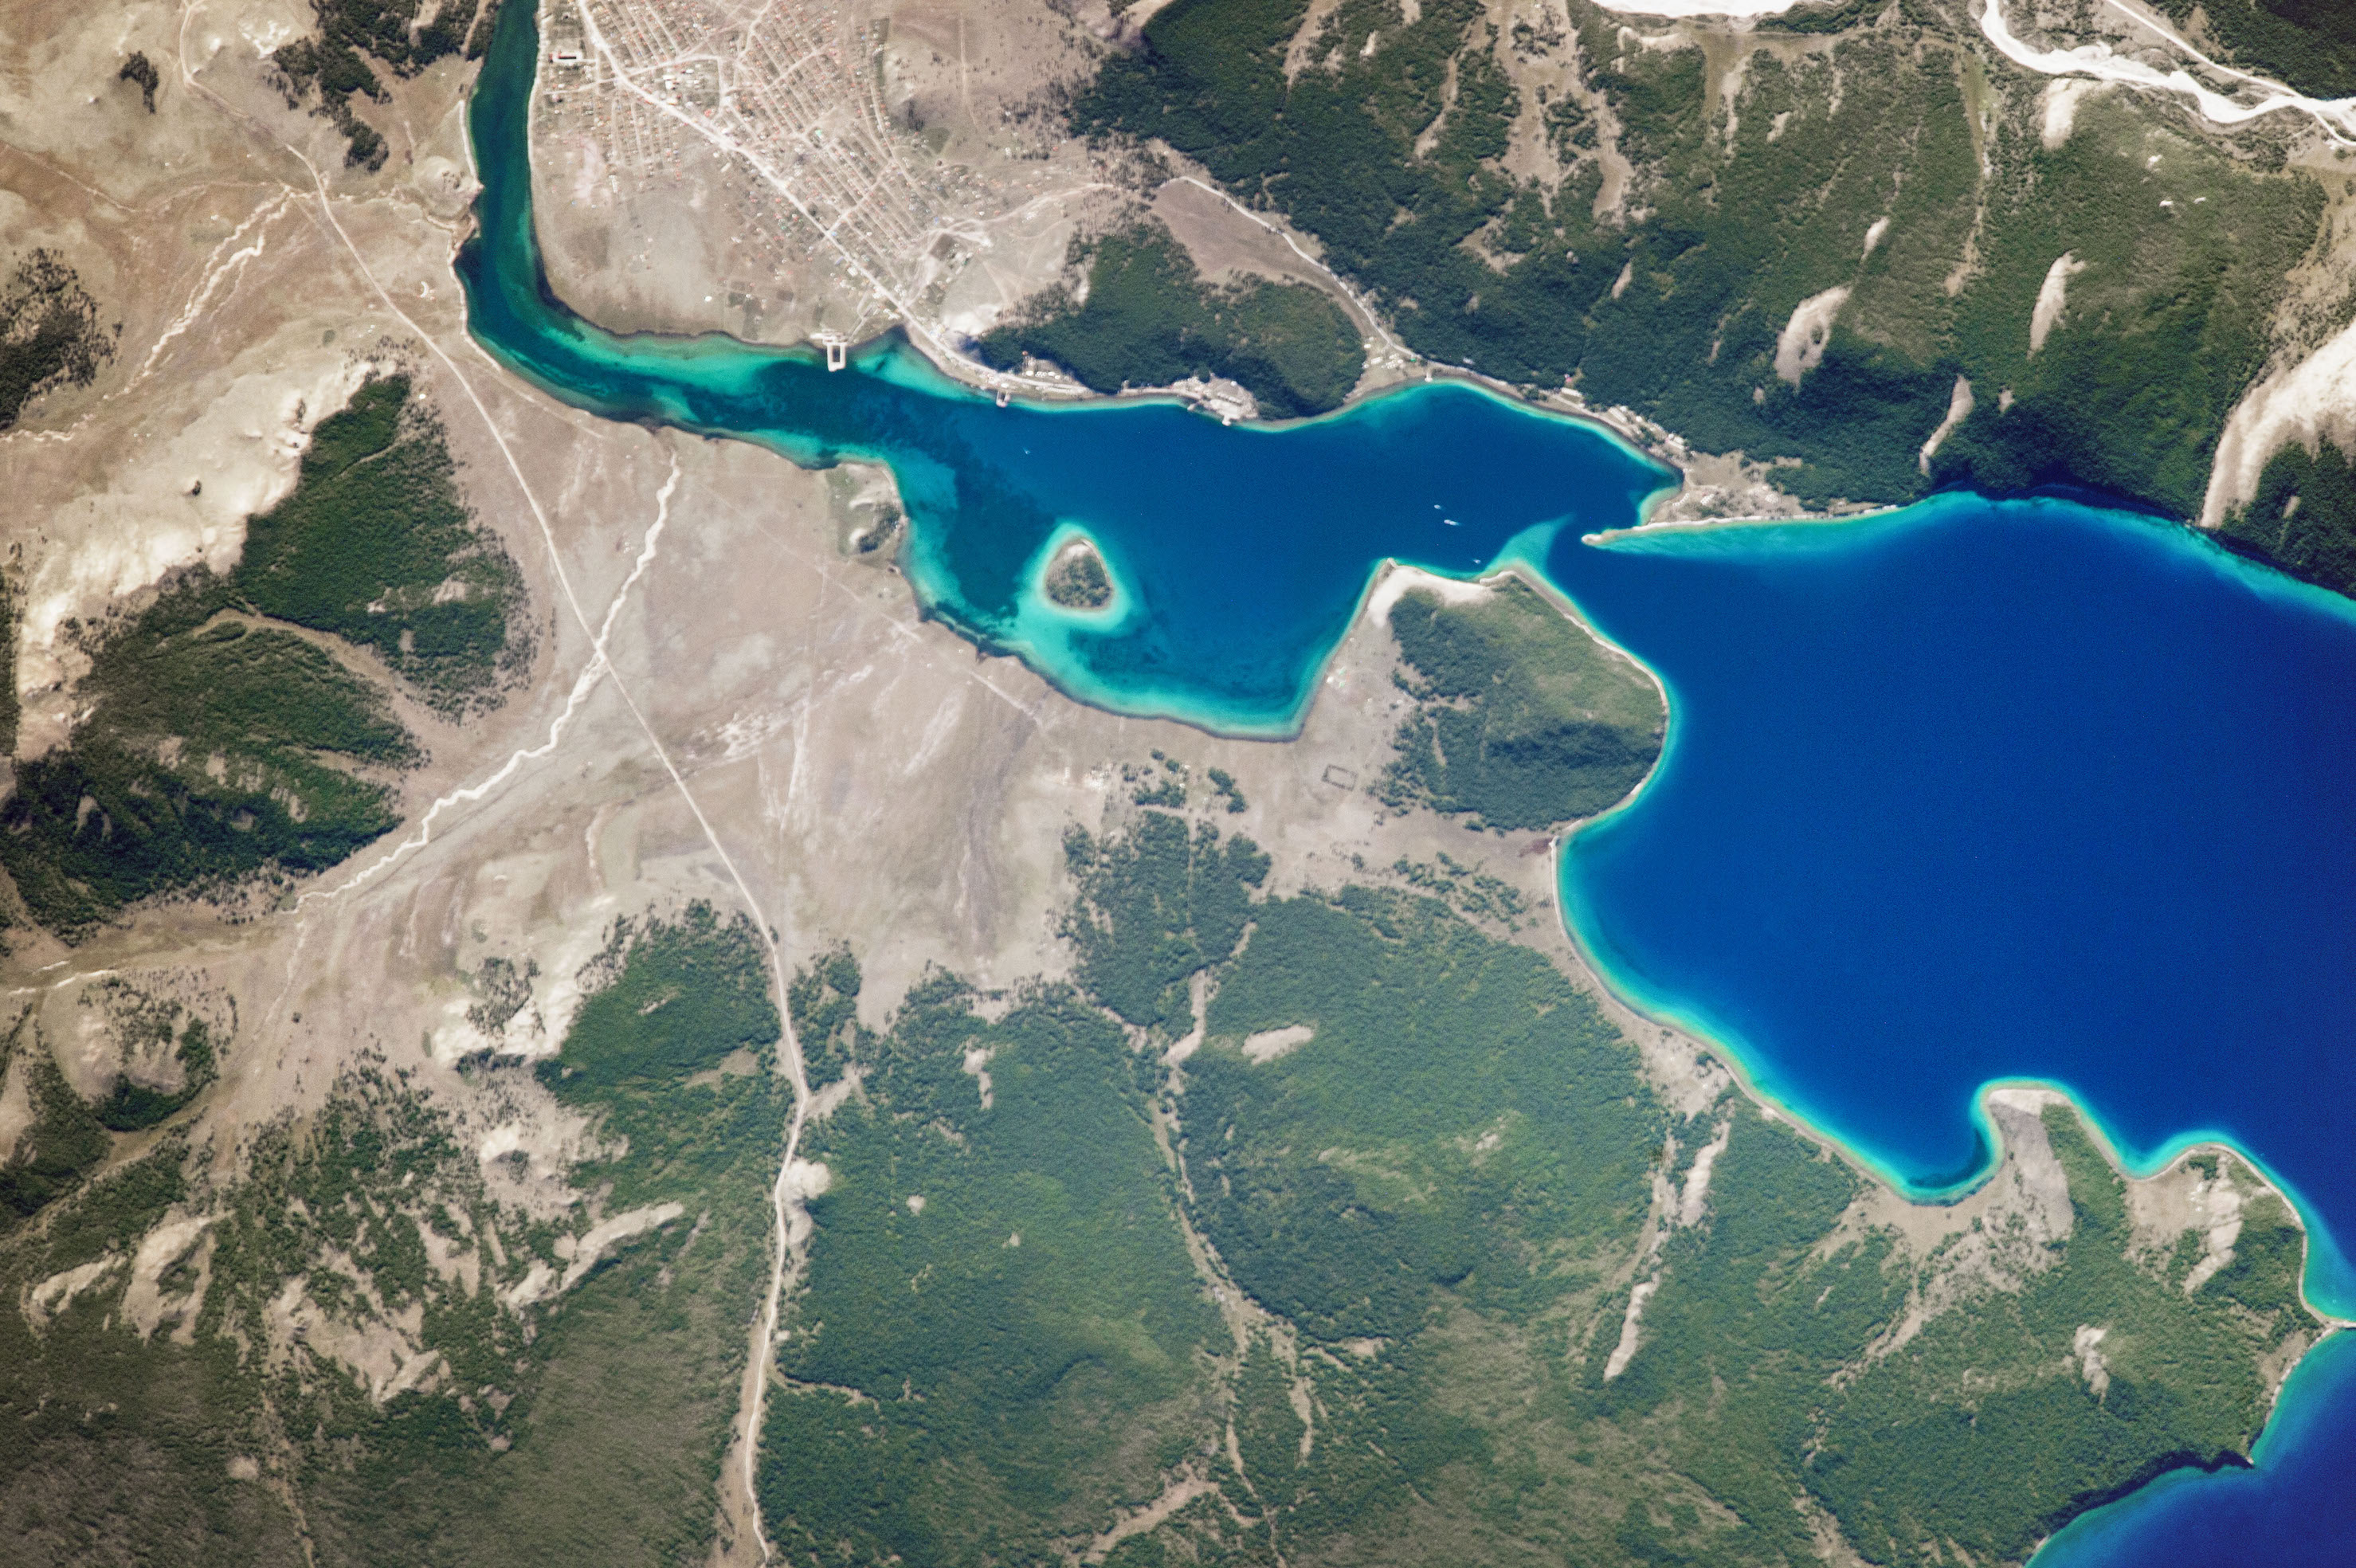 Today's Image of the Day comes from the NASA Earth Observatory and features a look at Lake Khuvsgul in north central Mongolia.